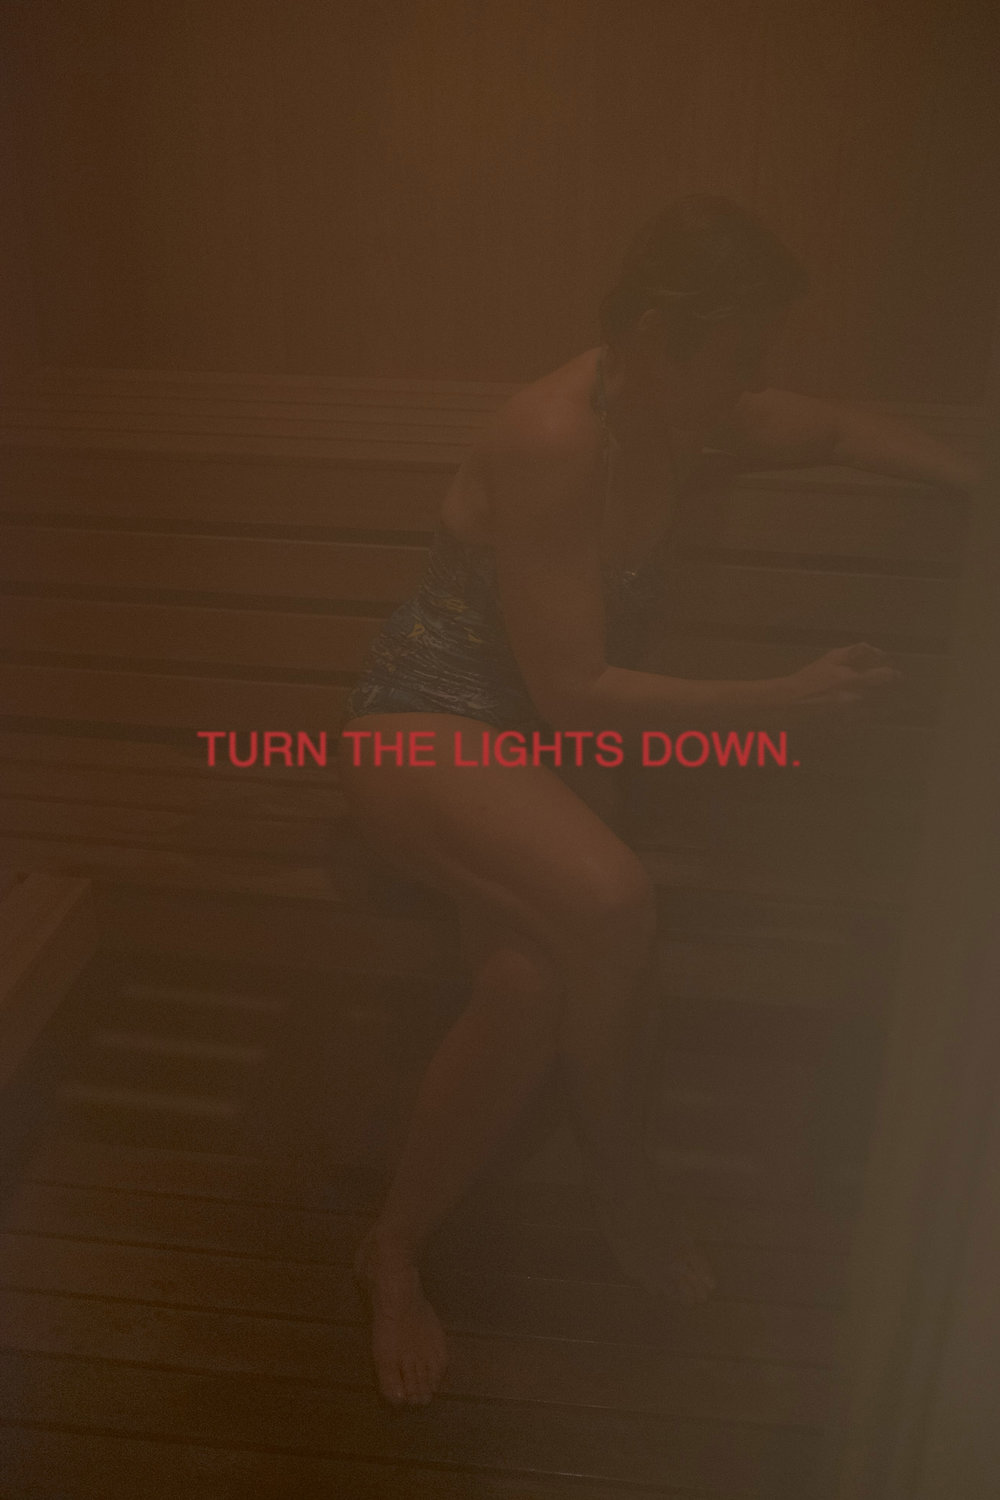 Turn down the lights.